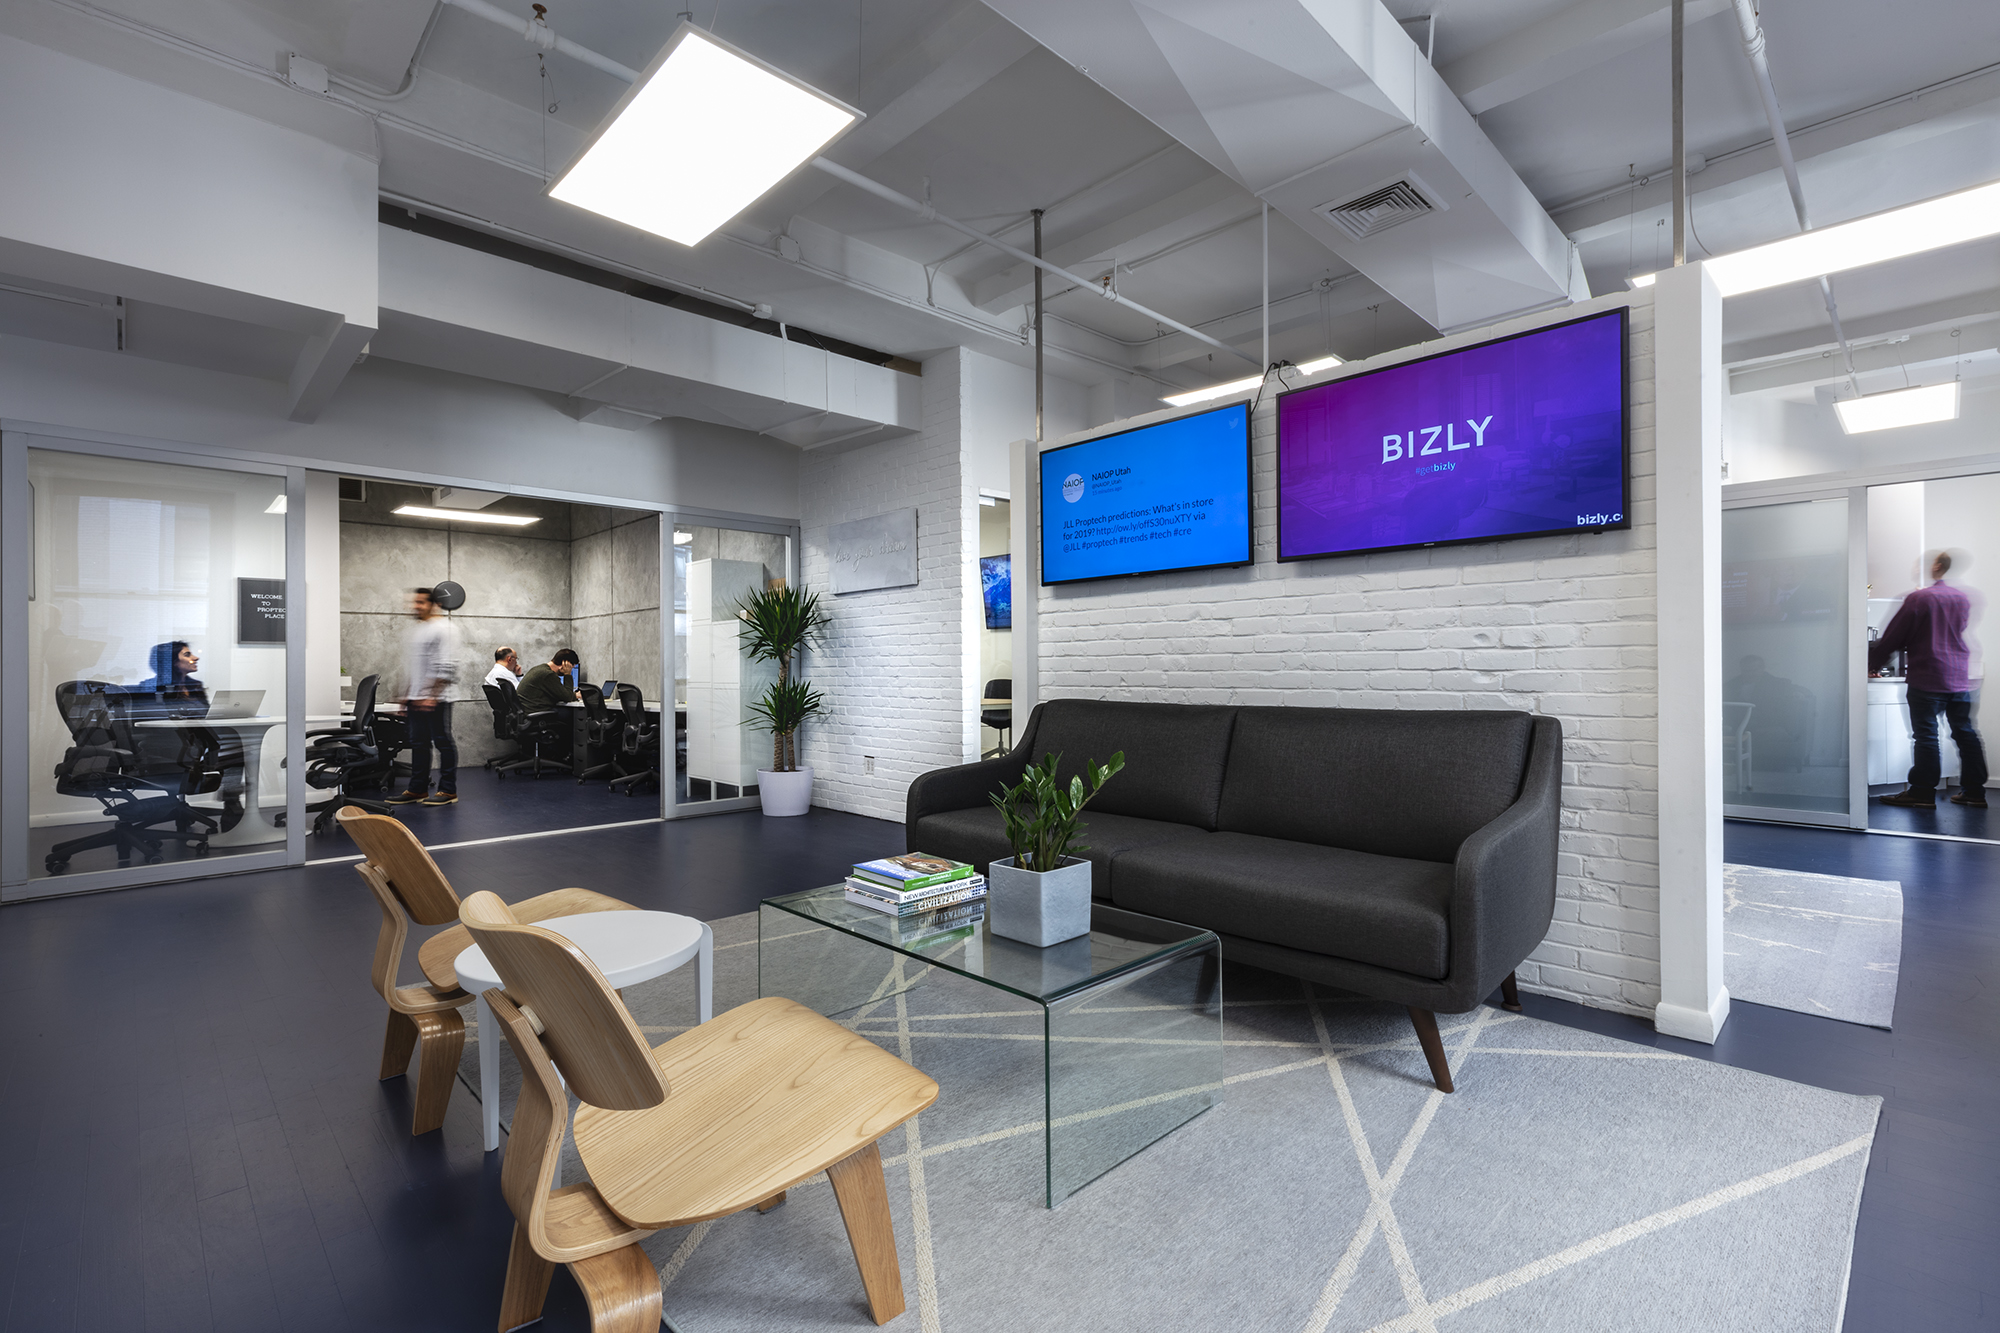 Co-working space a showroom for latest real estate technology